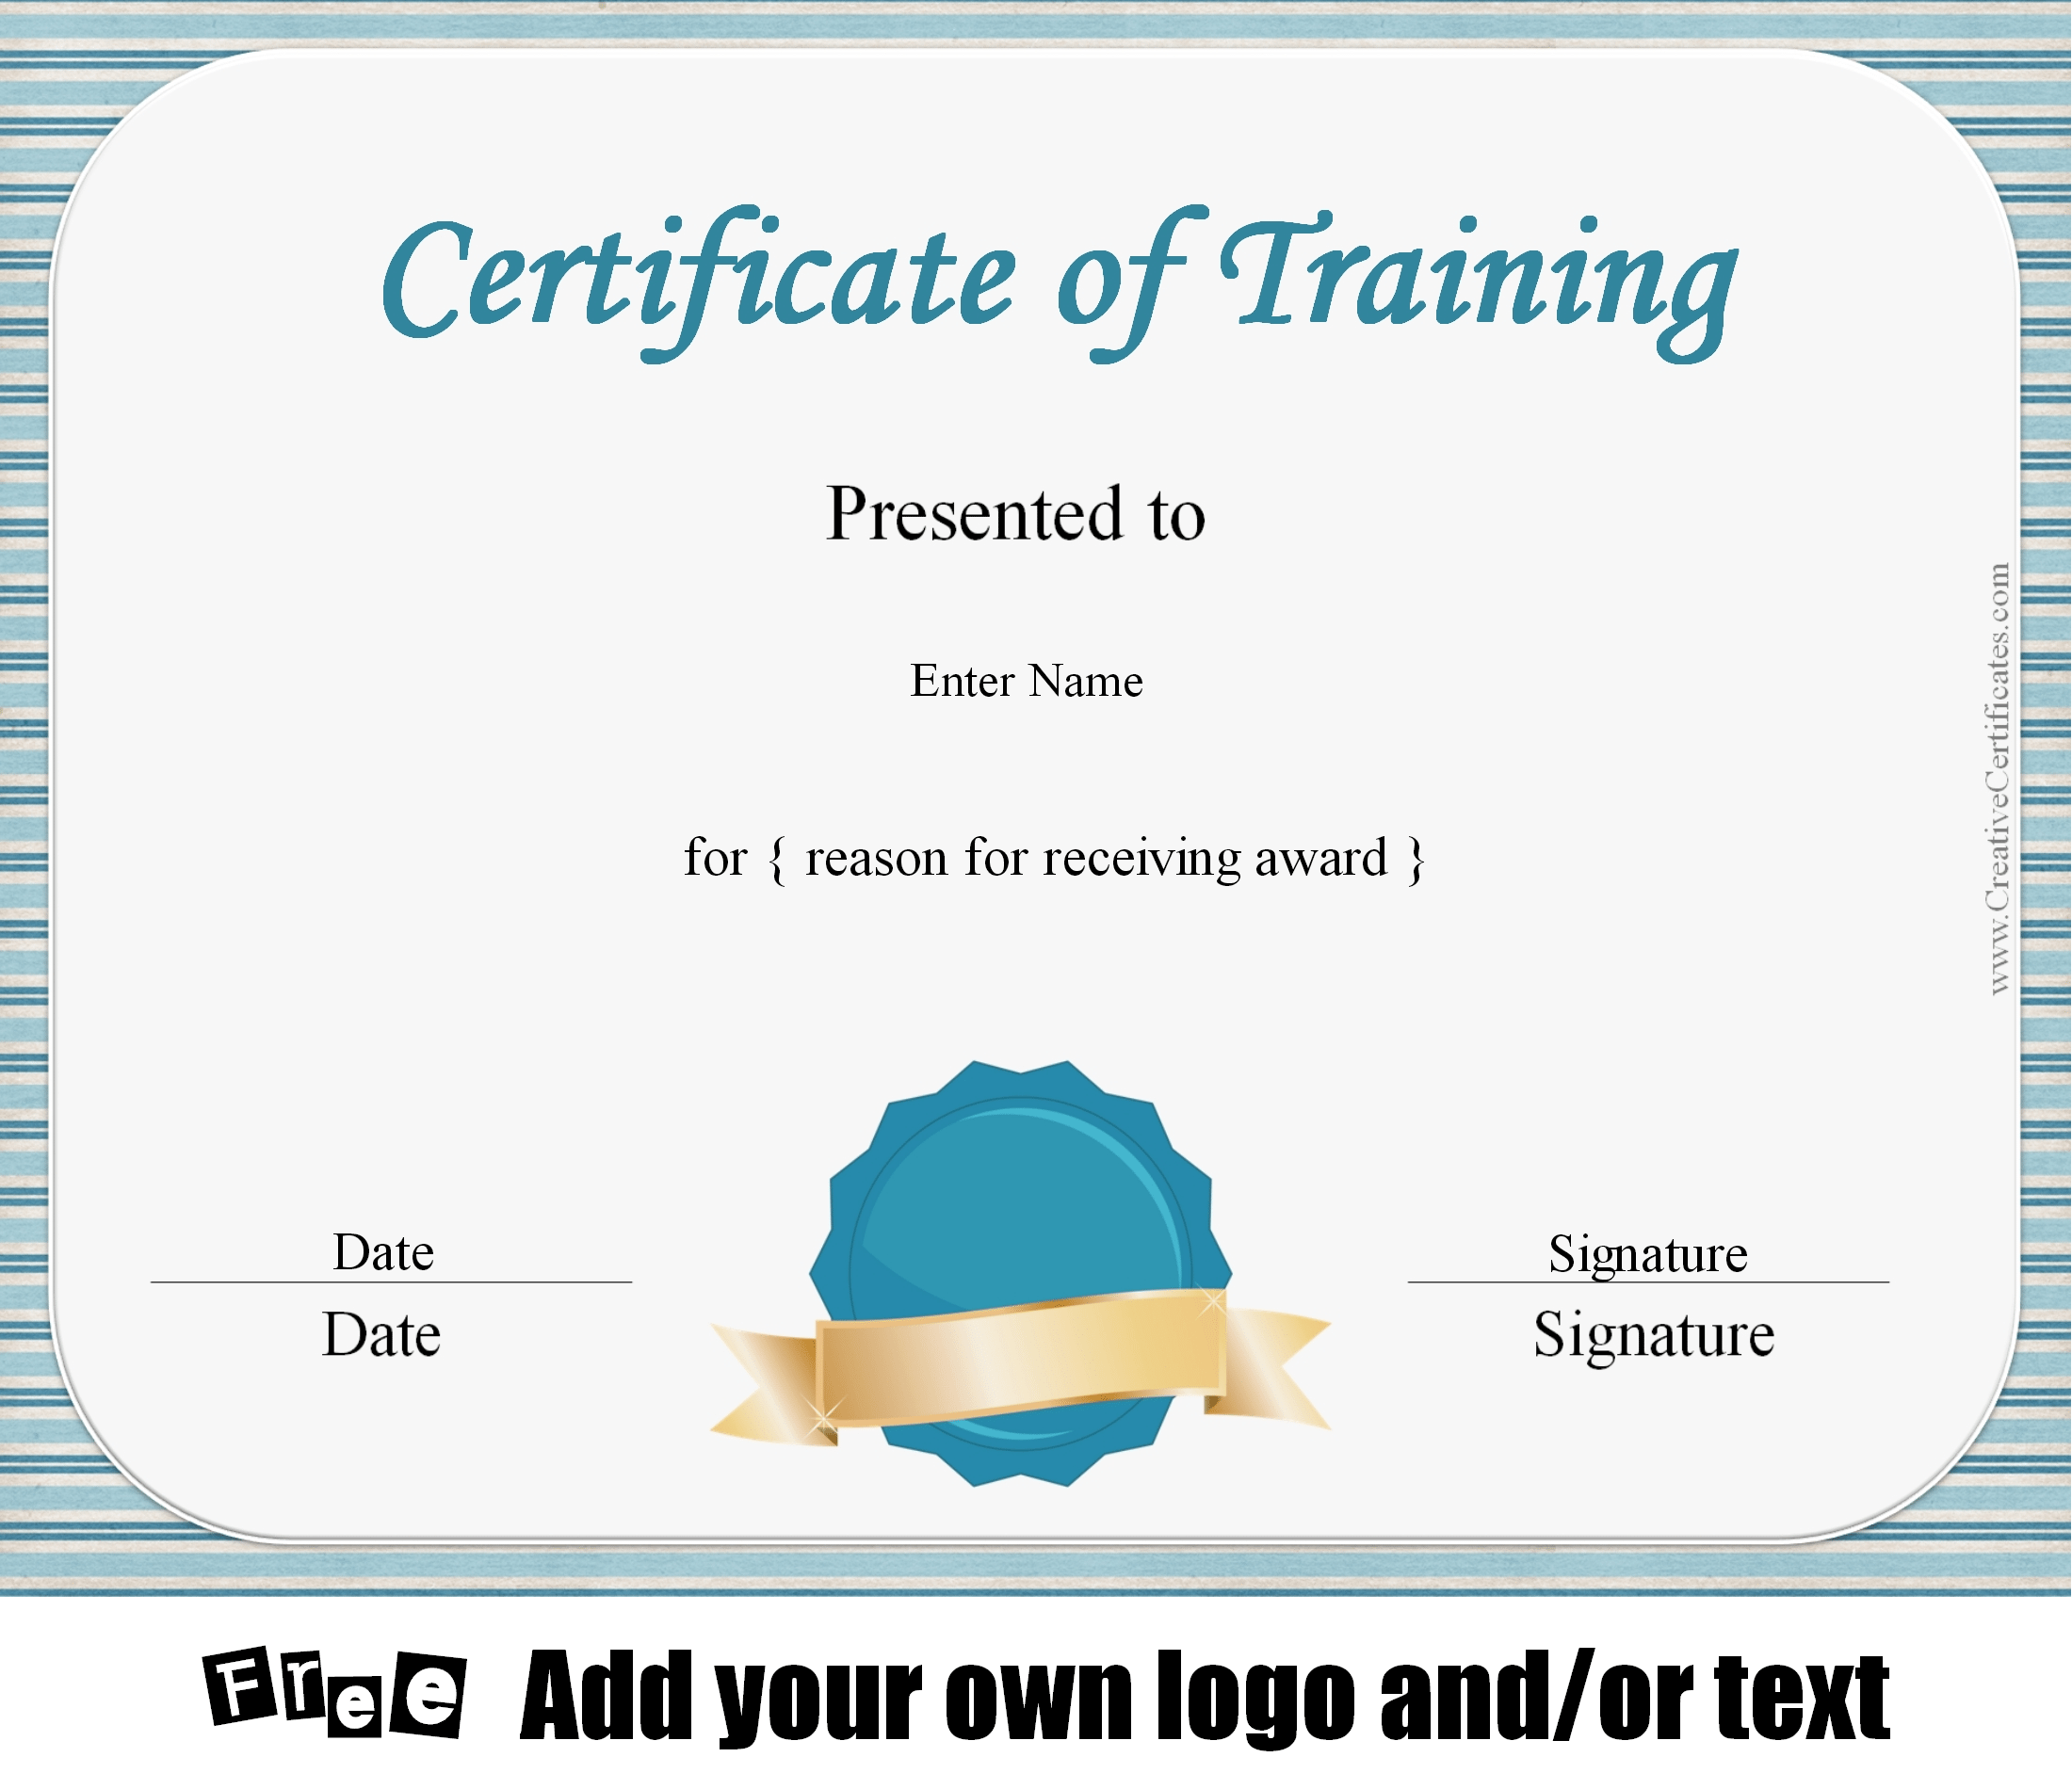 How To Add A Logo To Your Certificate Of Training Template